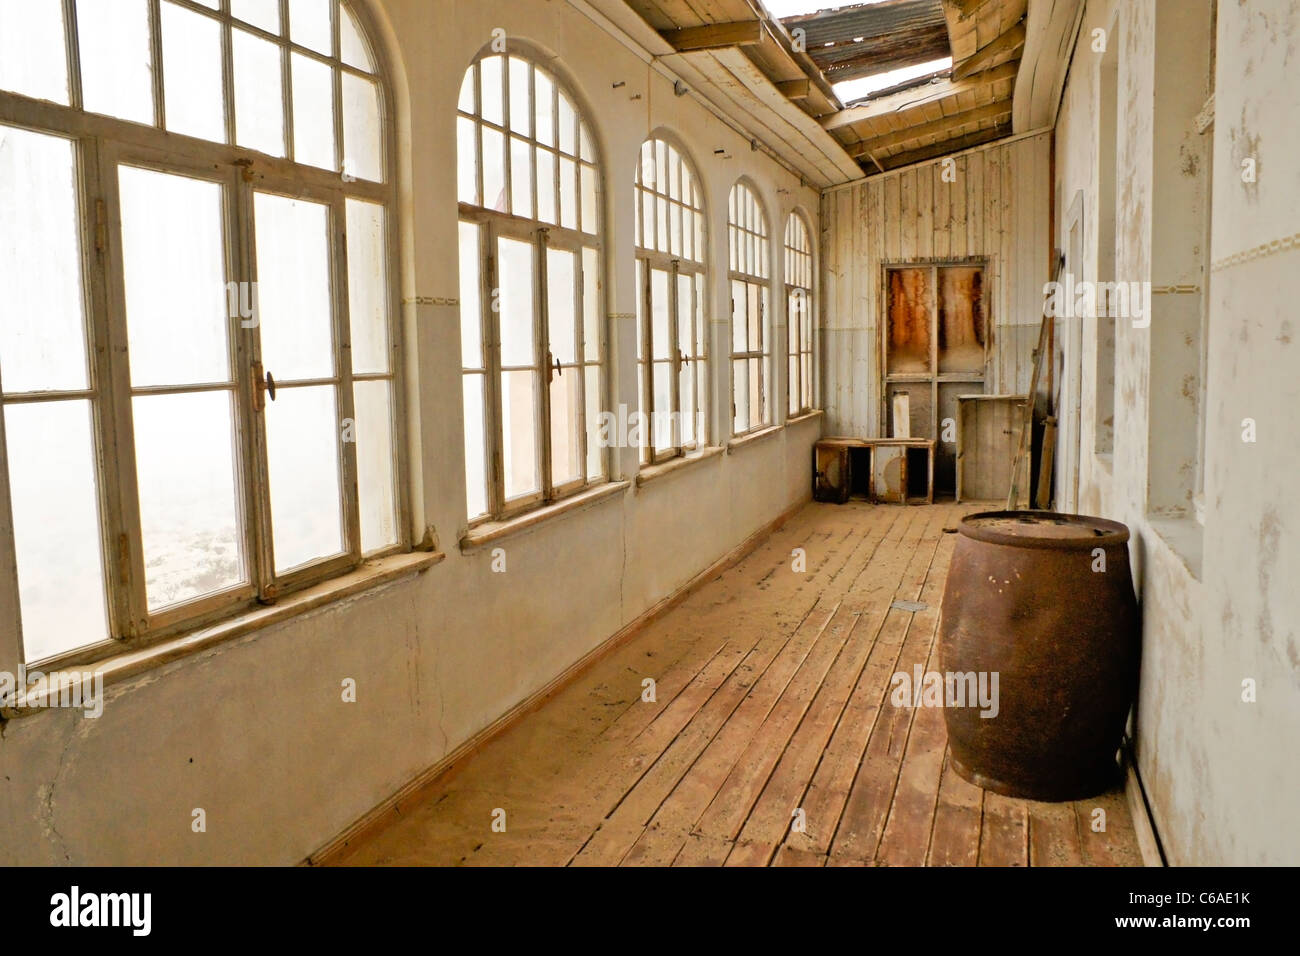 Old building in abandoned diamond mining town of Kolmanskop, Namibia - Stock Image